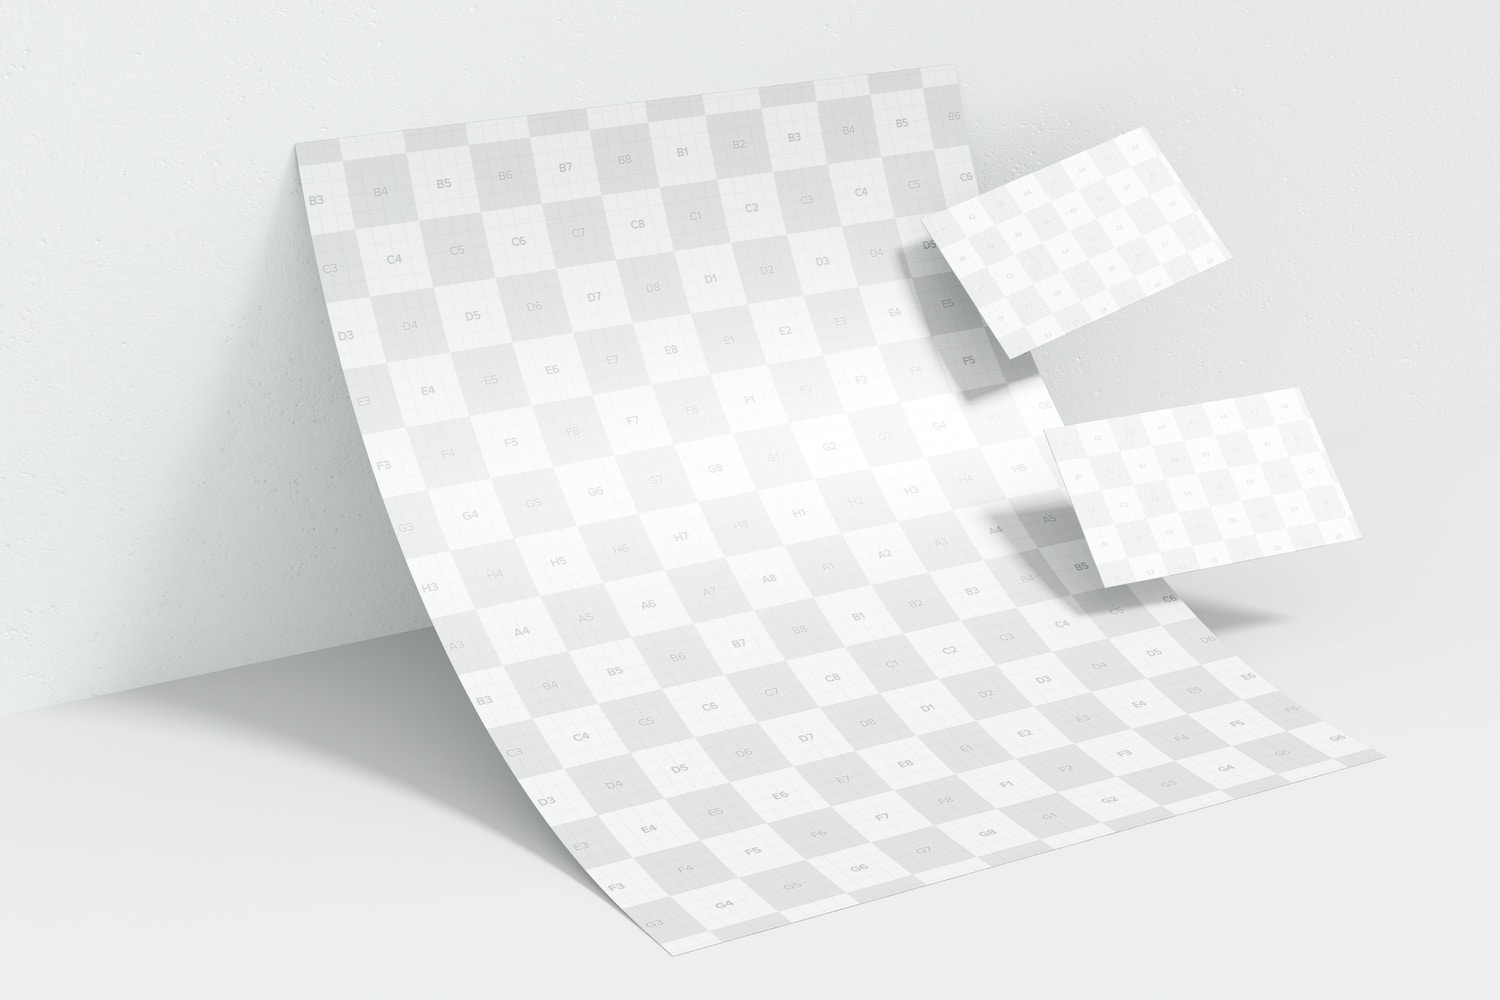 Letterhead with Business Card Mockup, Leaned